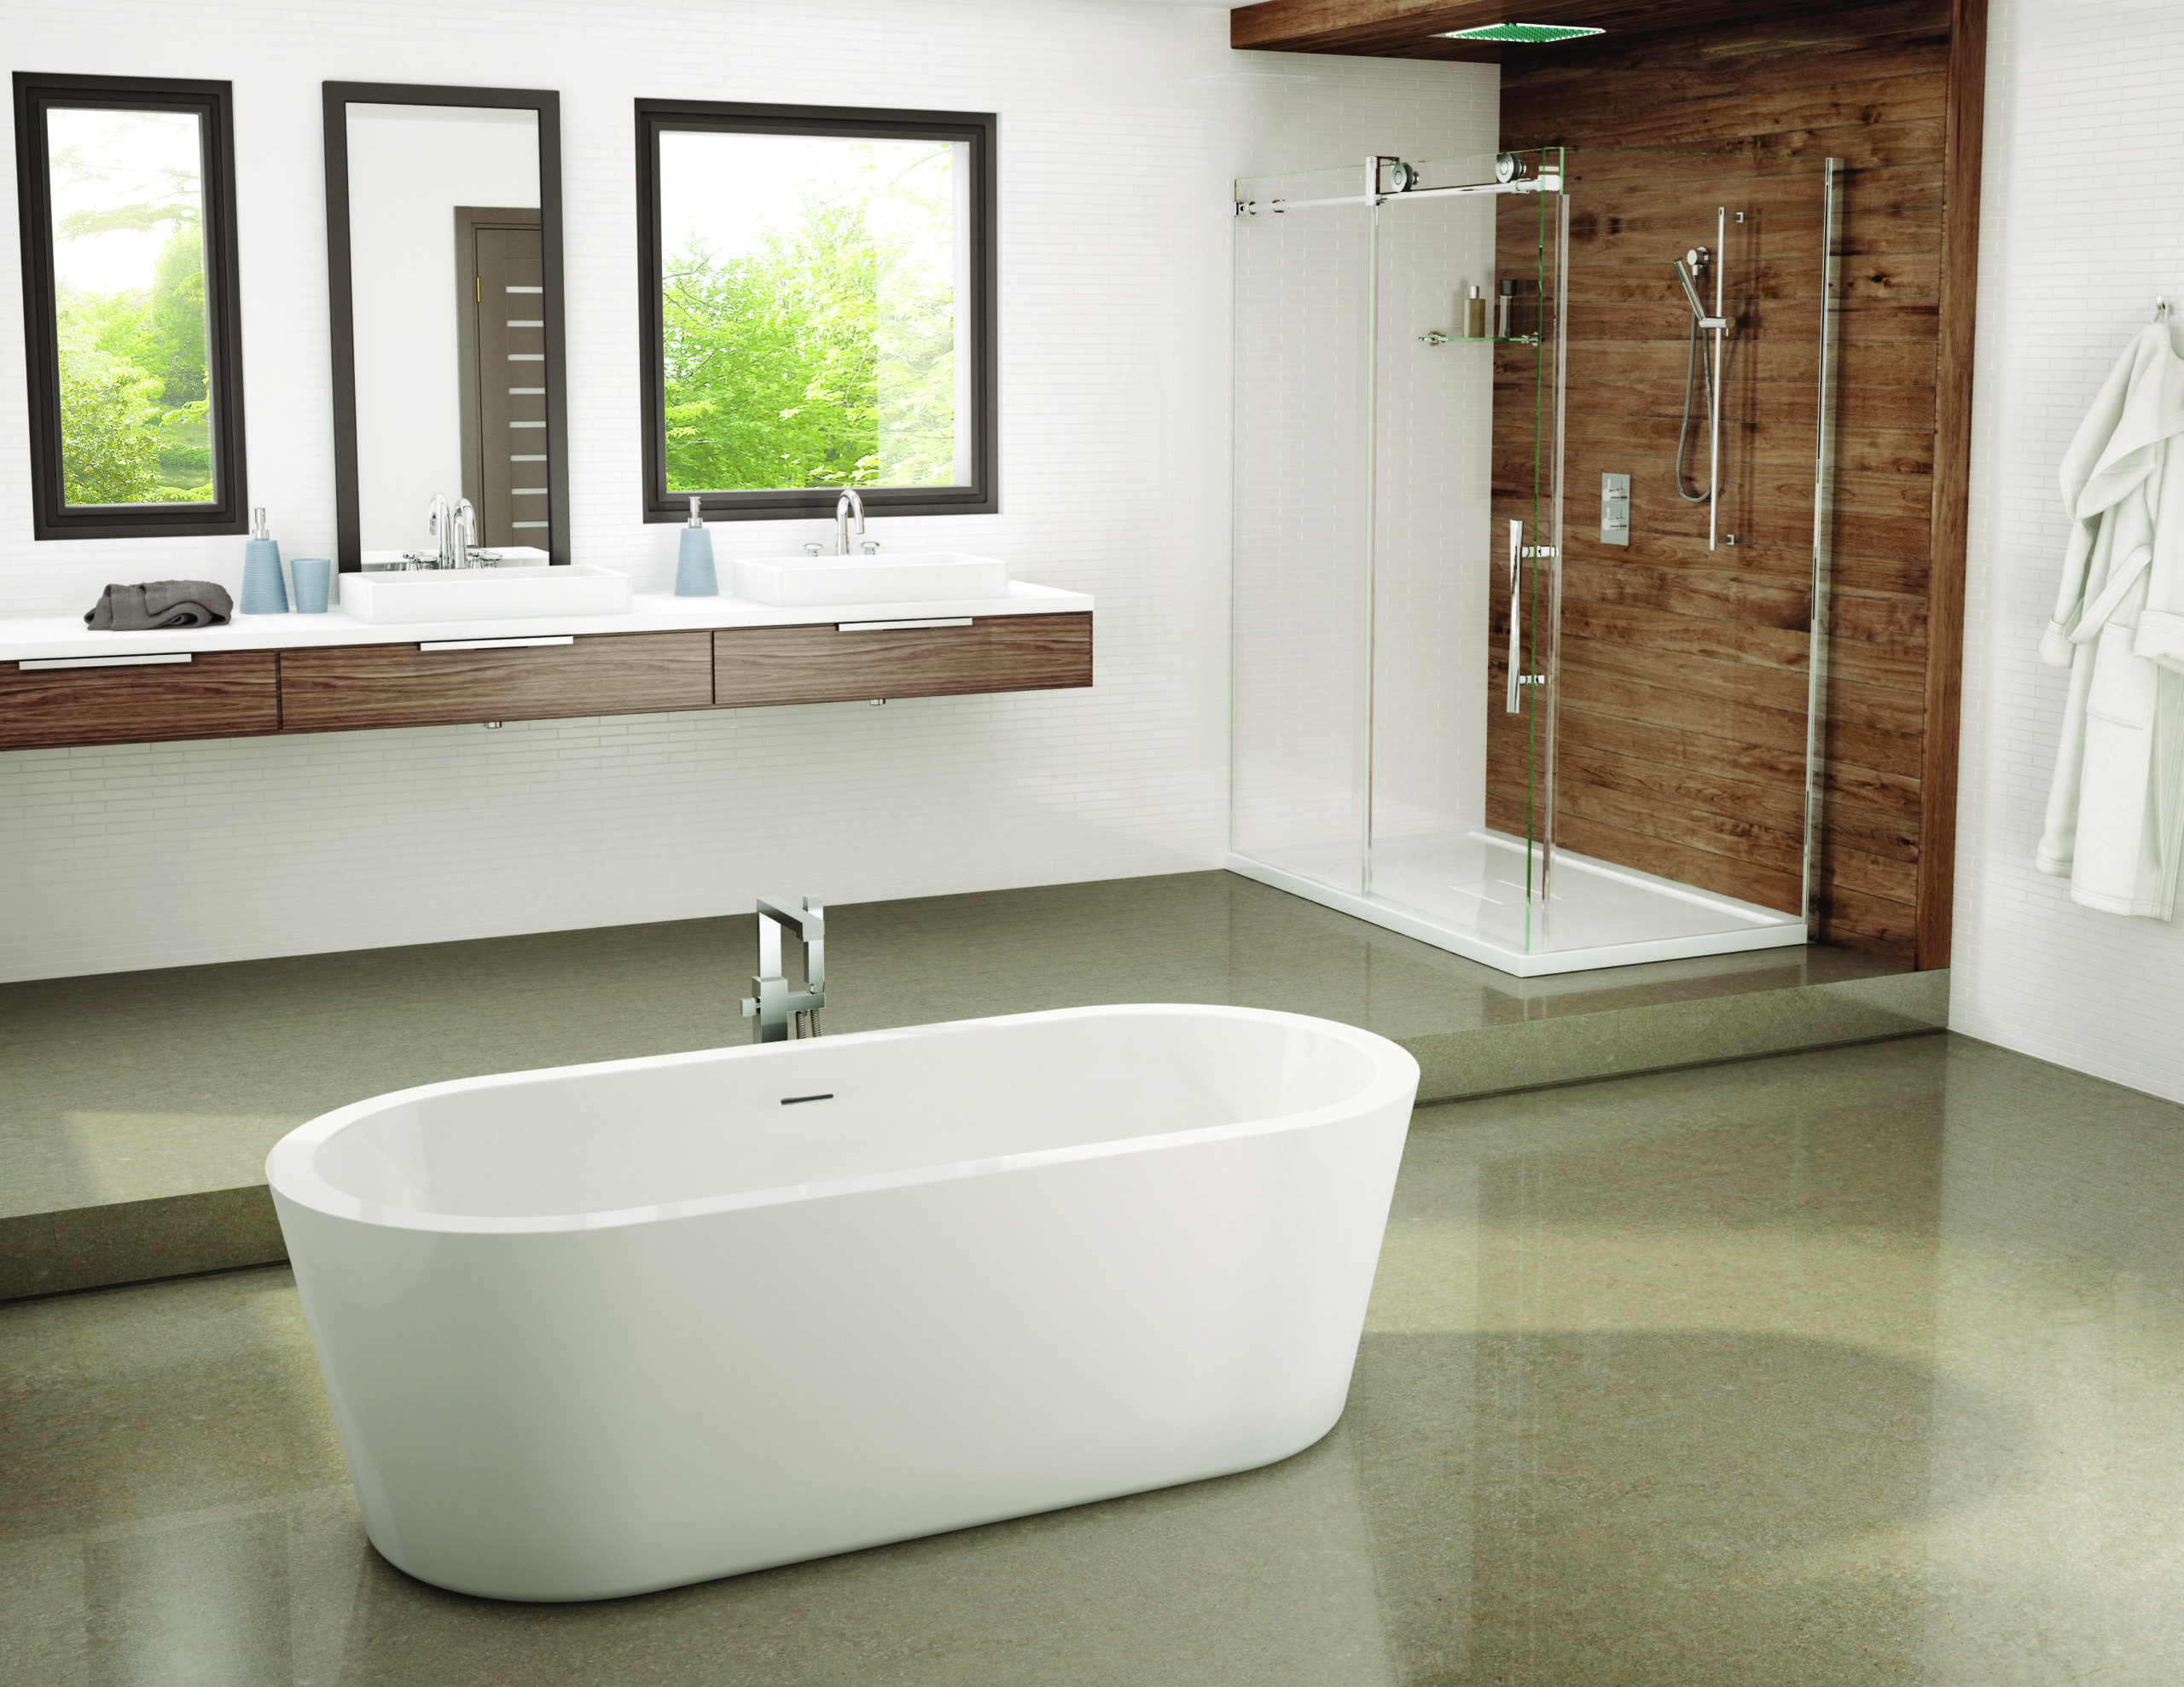 fleurco tub image on wright associates website wasalesreps.com